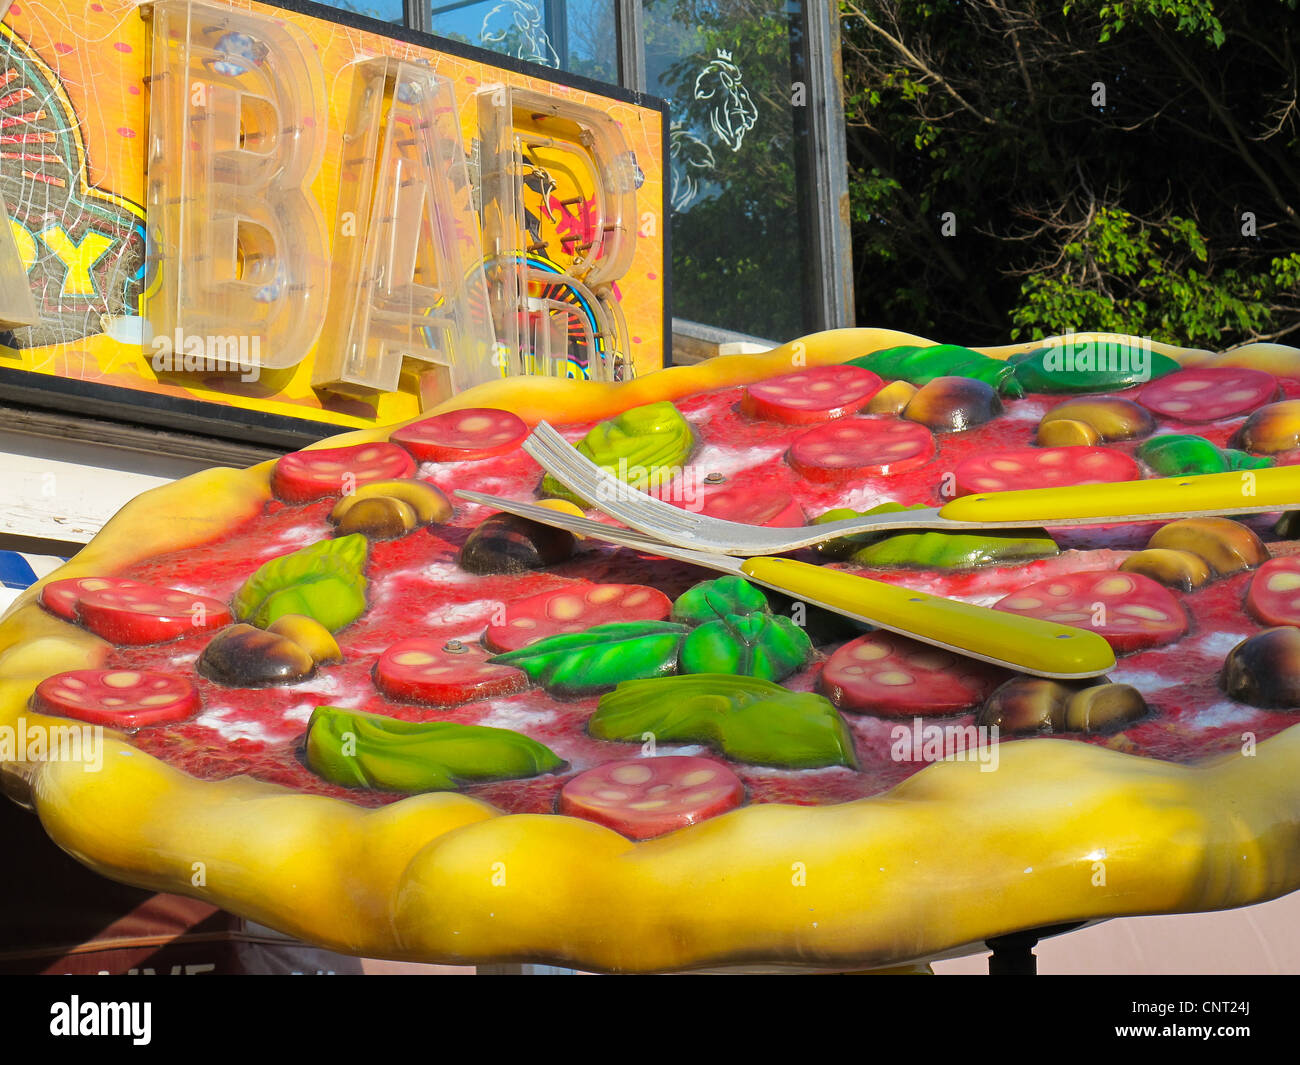 Plastic Pizza, bar, sign, Canary Islands, Holiday, Vacation, - Stock Image